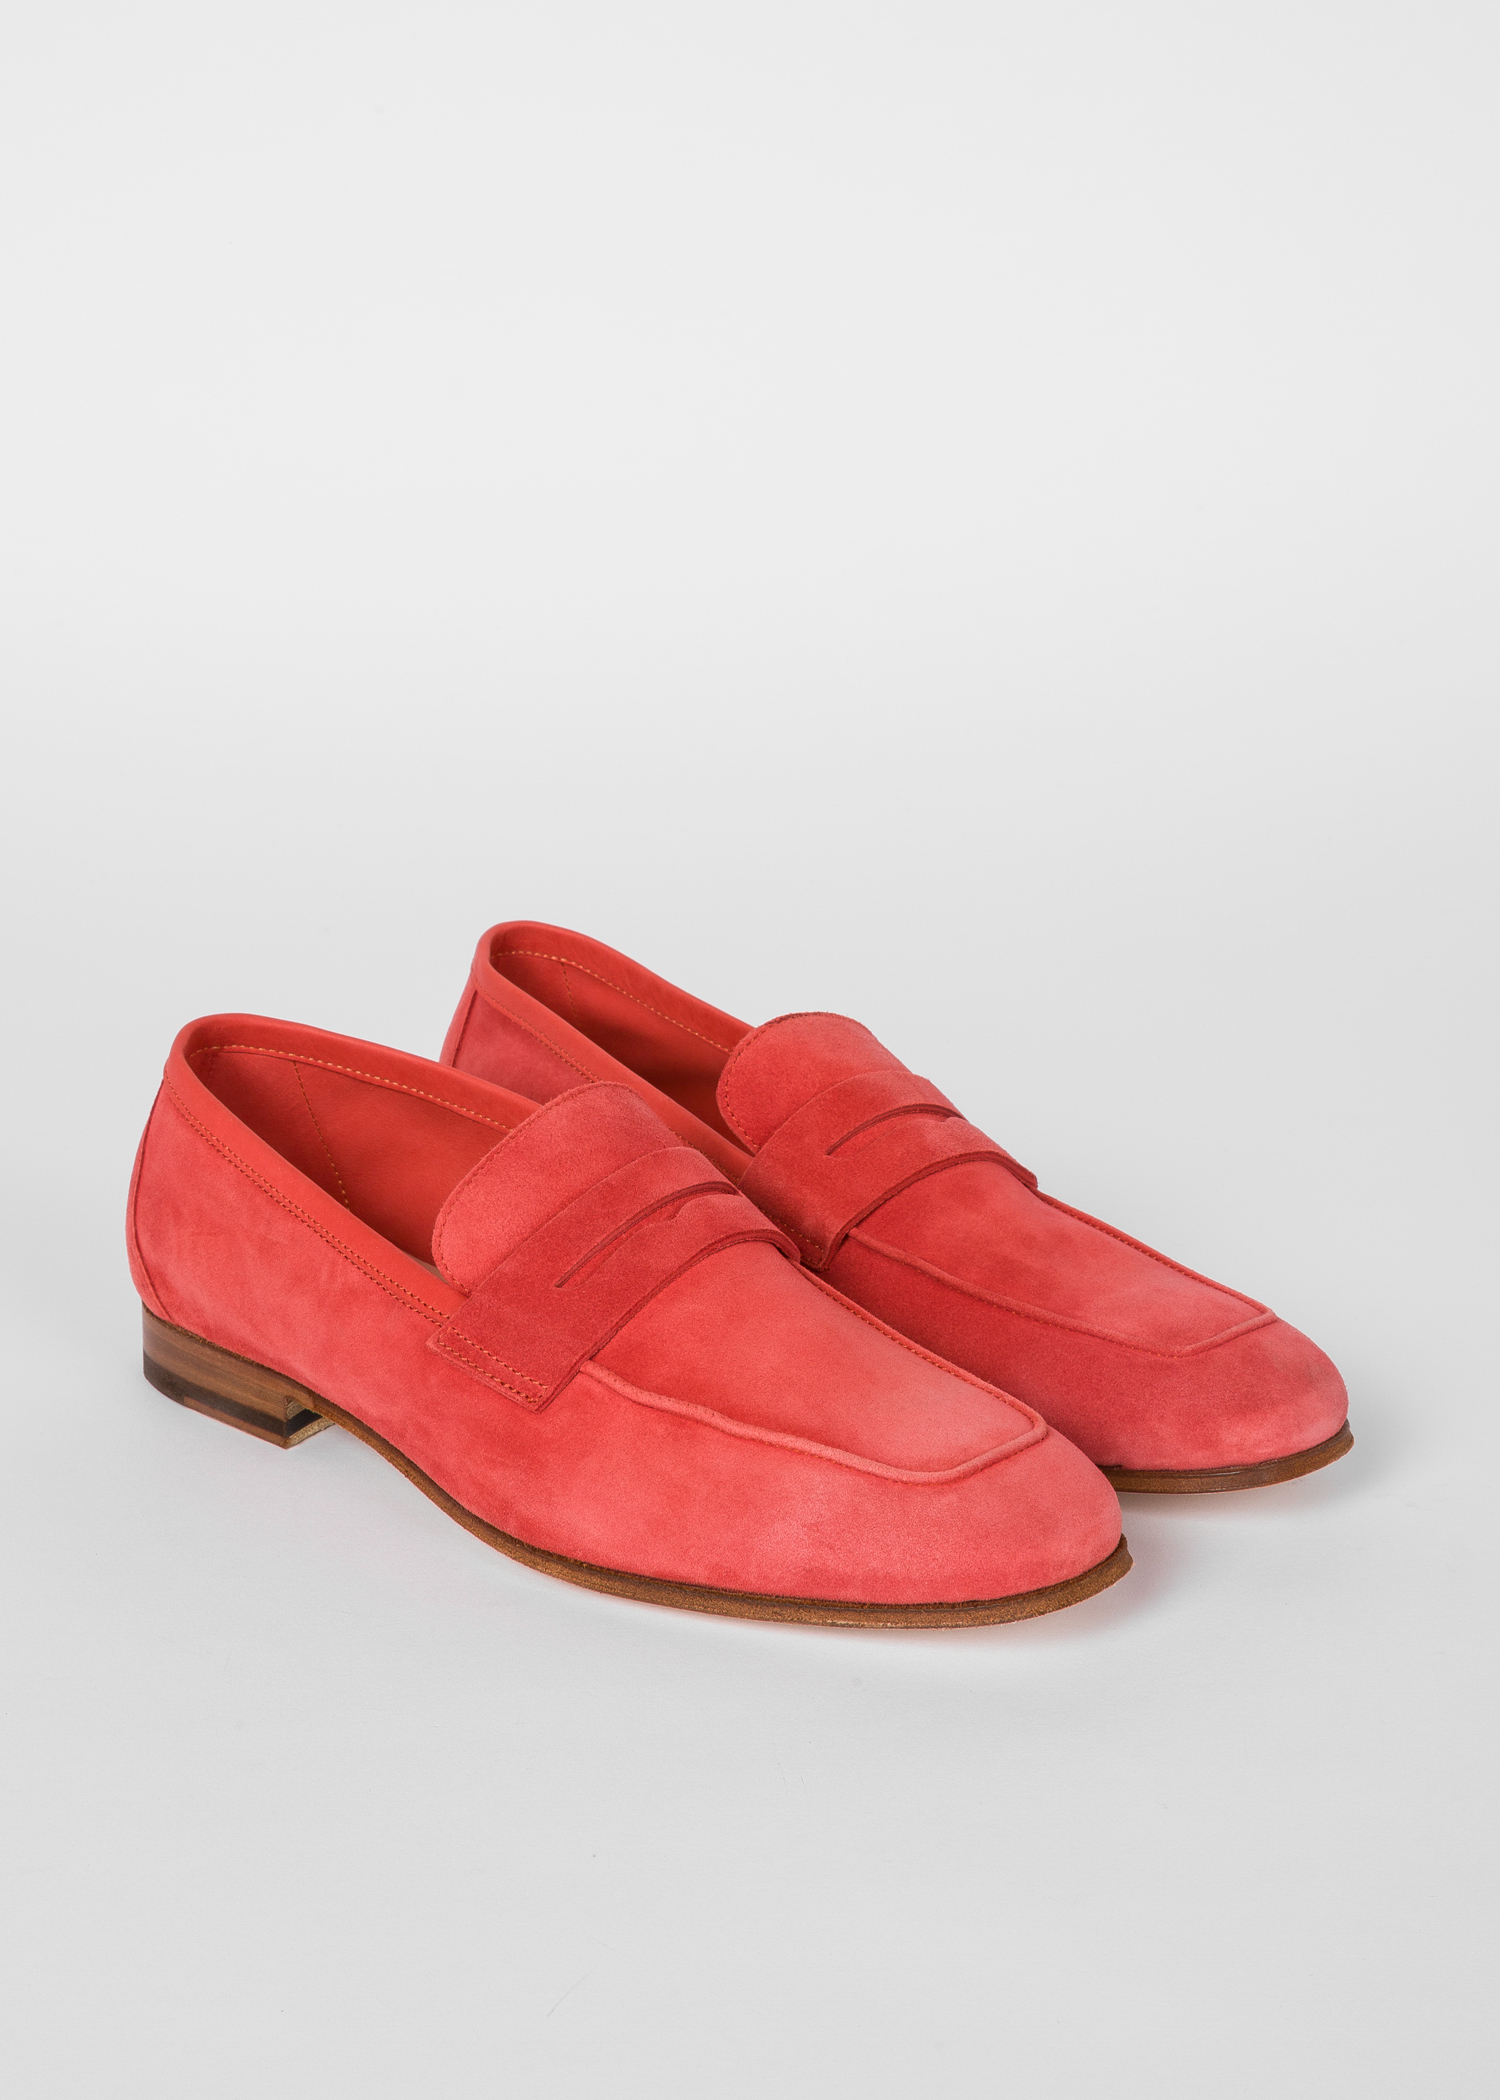 e3bd7587e67 Angled side view - Women s Coral Suede Leather  Glynn  Penny Loafers ...